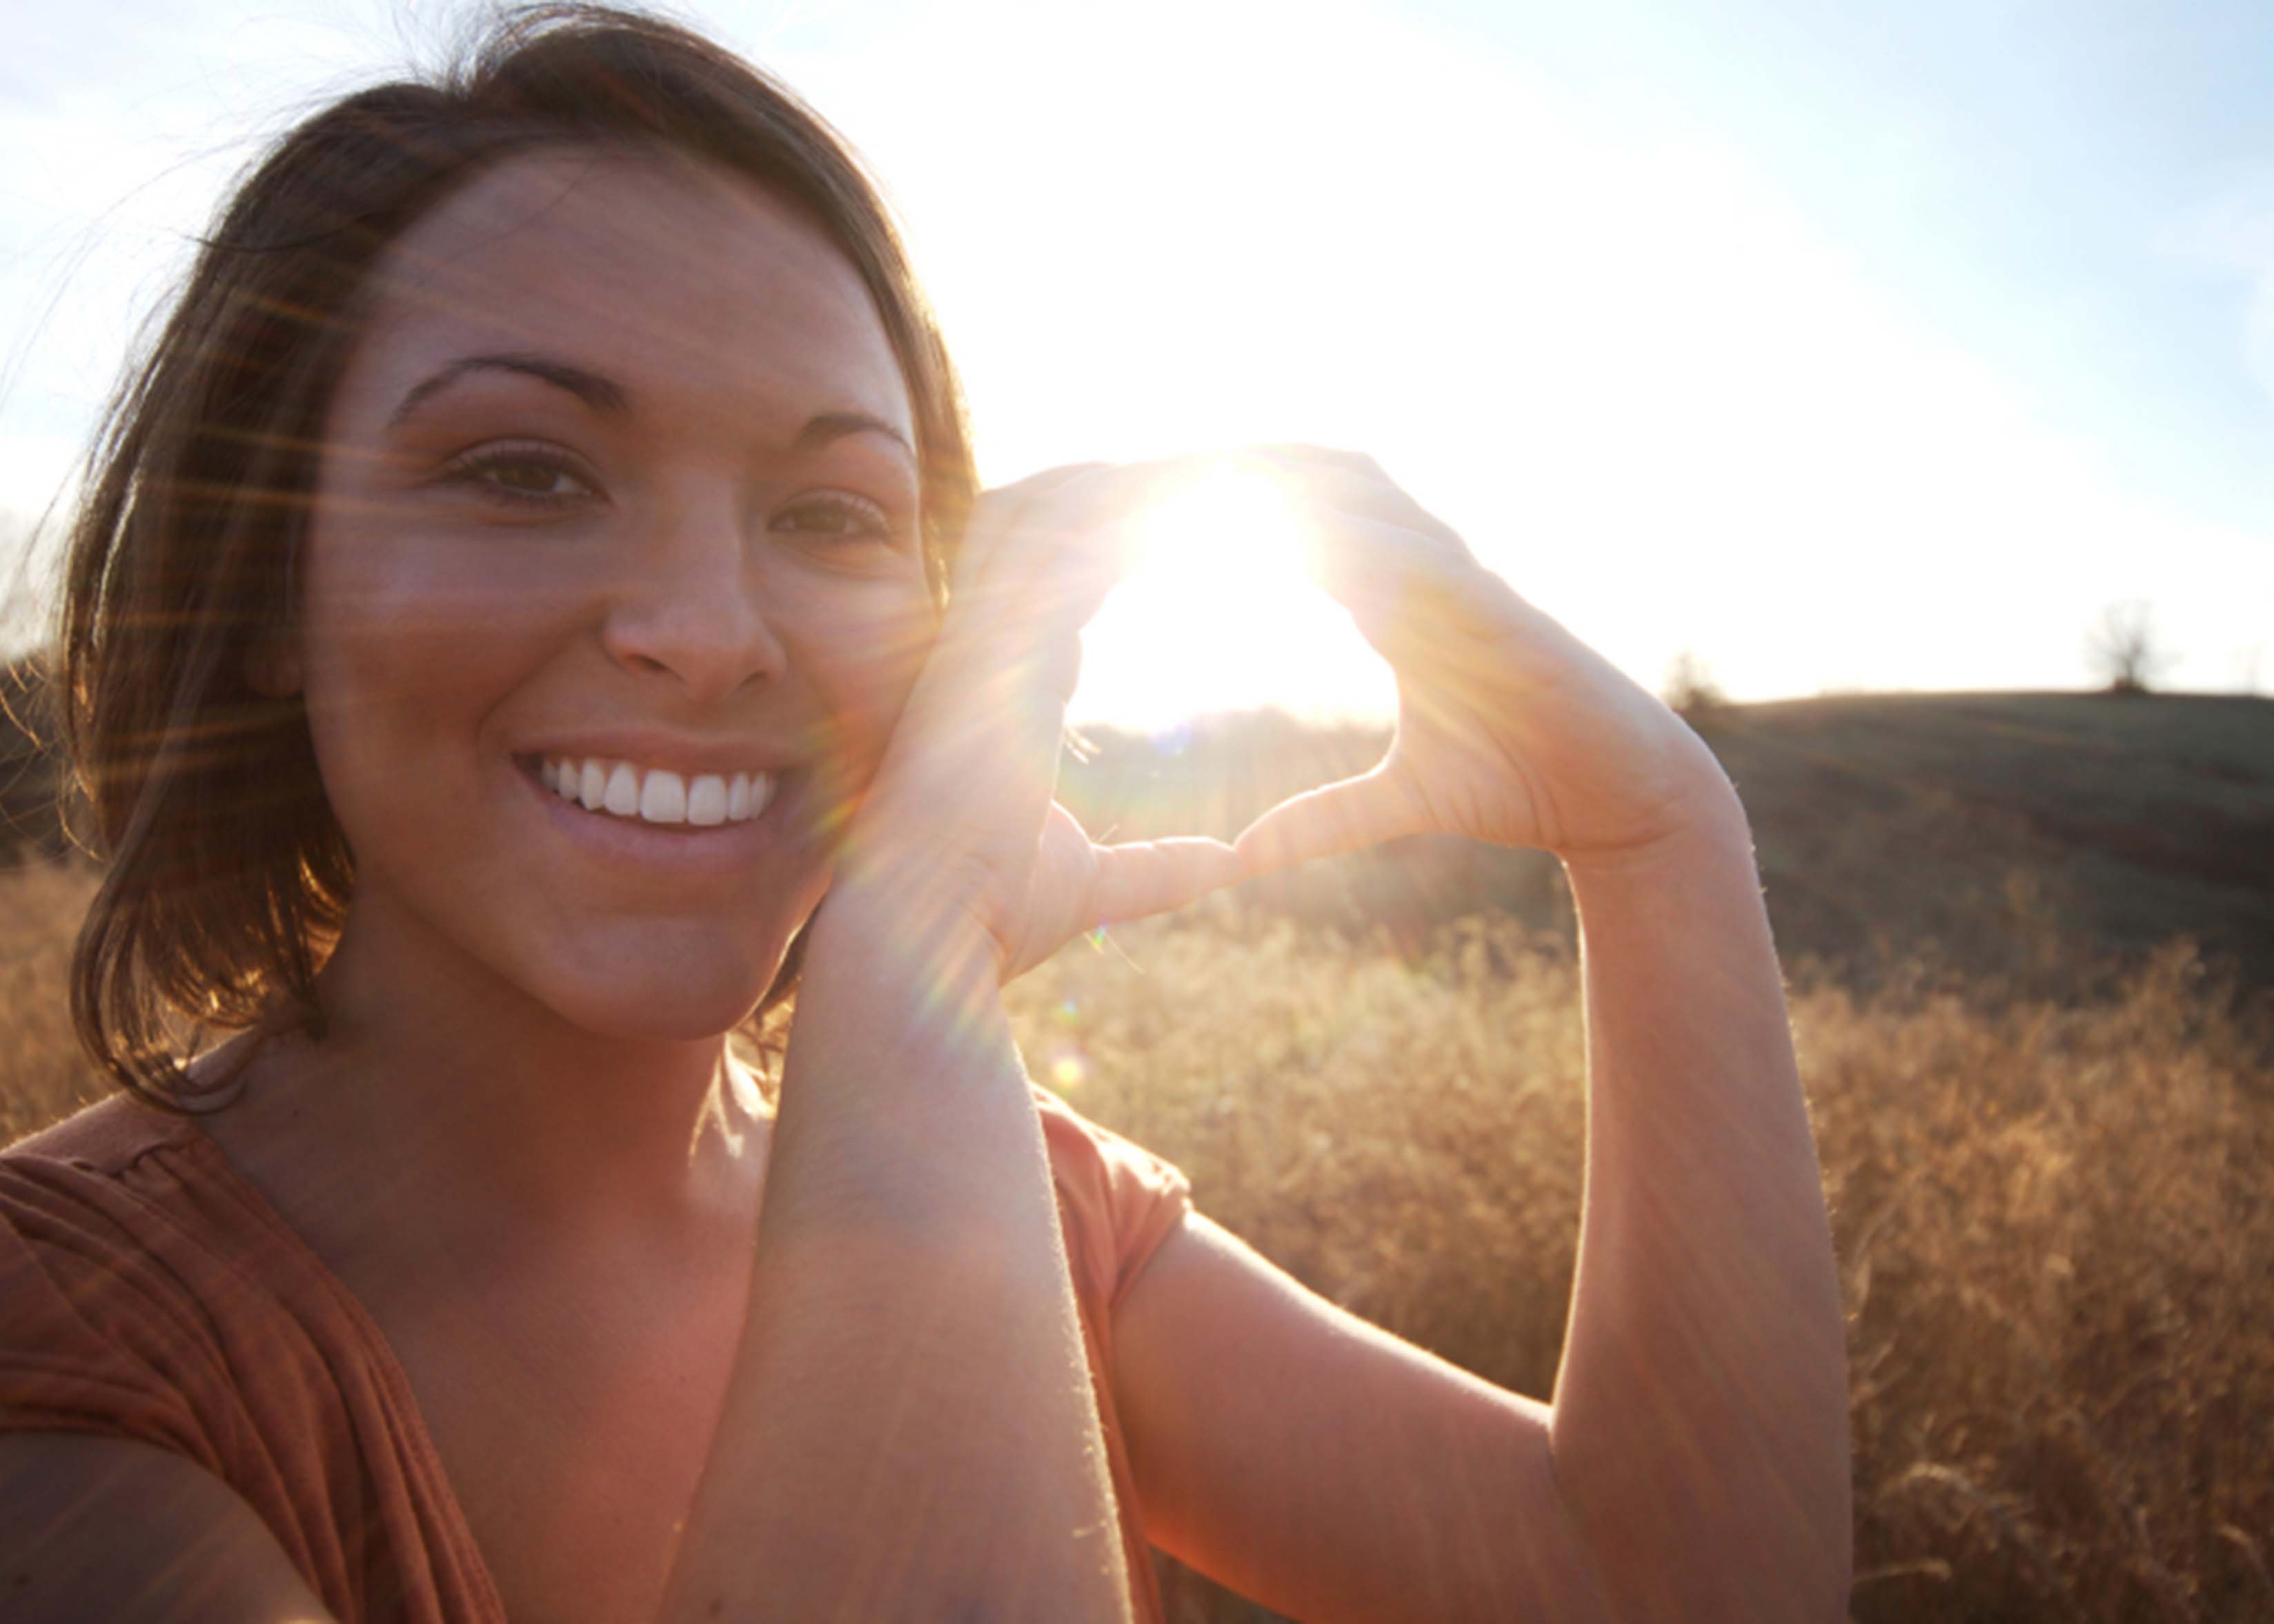 Young Native woman making a heart symbol with her hands in front of a sunset